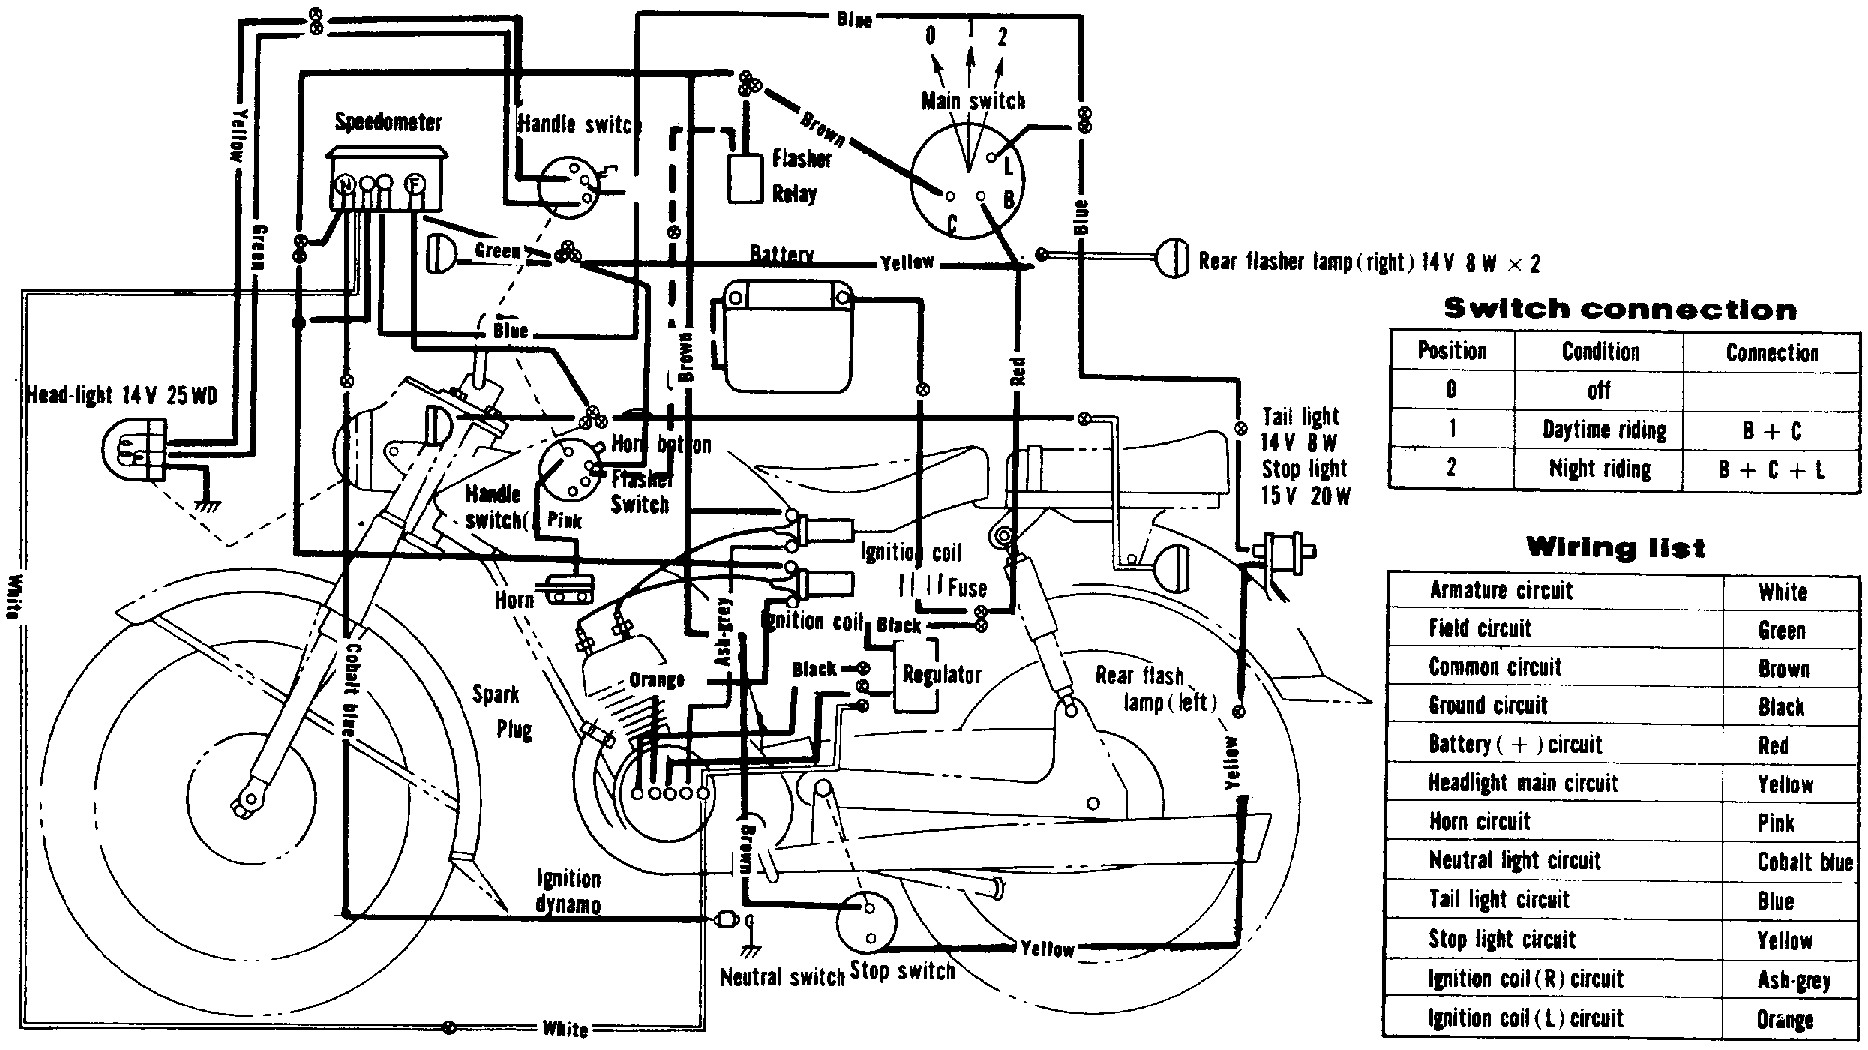 wiring diagram suzuki smash wiring diagram data rh 3 18 14 reisen fuer meister de